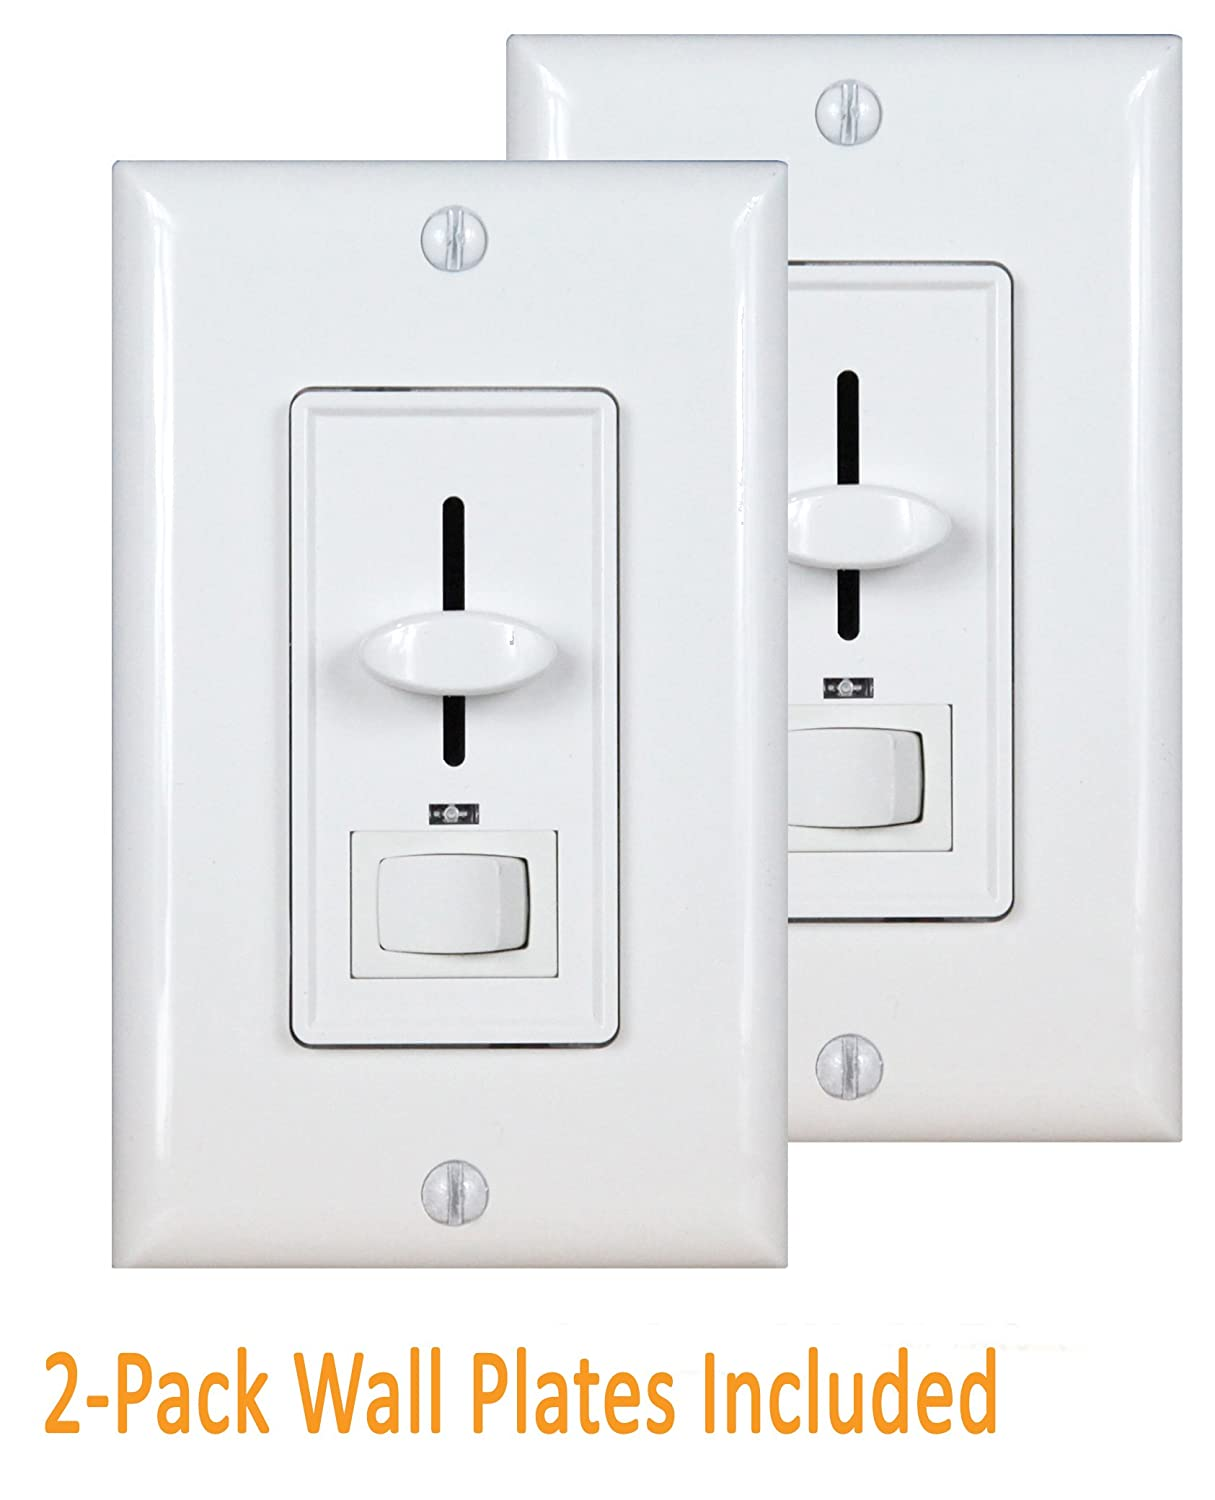 Light Dimmer Enerlites 50321 W 3 Way Switch For Energy Saving To Wire A Ask The Electrician Hd Coloring Pages Dimmable Incandescent Halogen 700 Watts Bulbs White 2 Pack